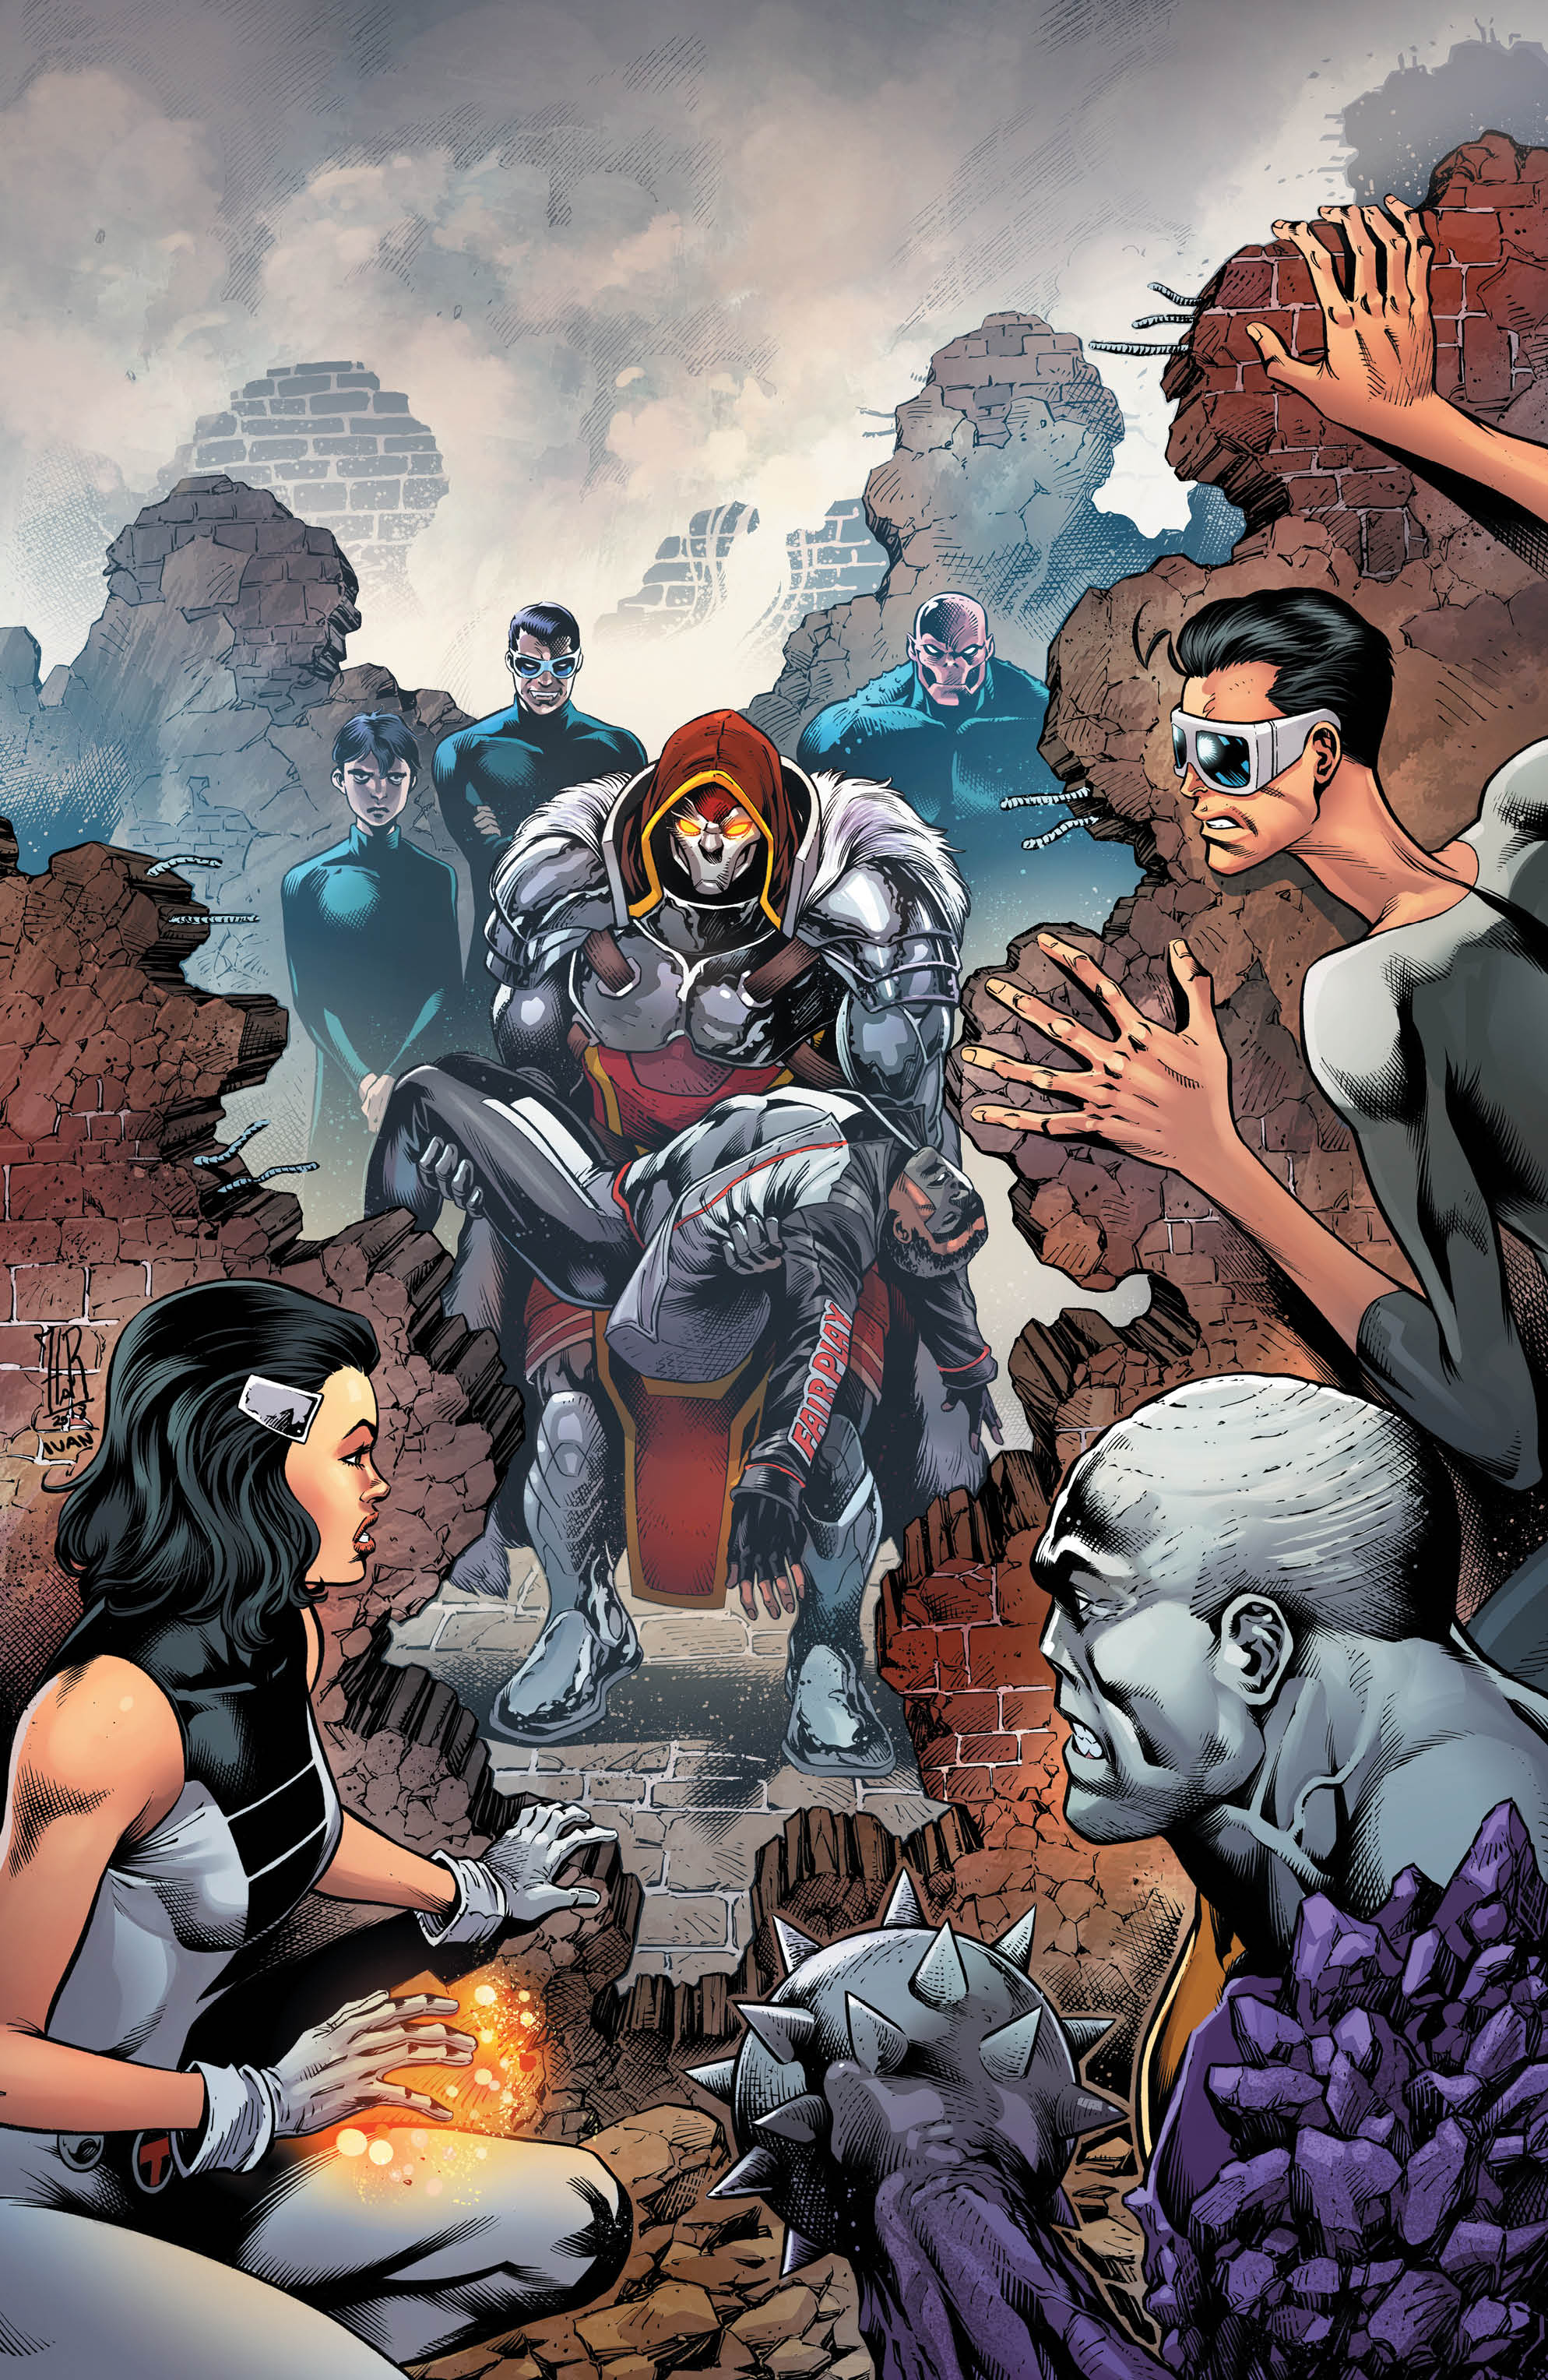 Jeff Lemire's penultimate issue of The Terrifics sets up the finale incredibly well.